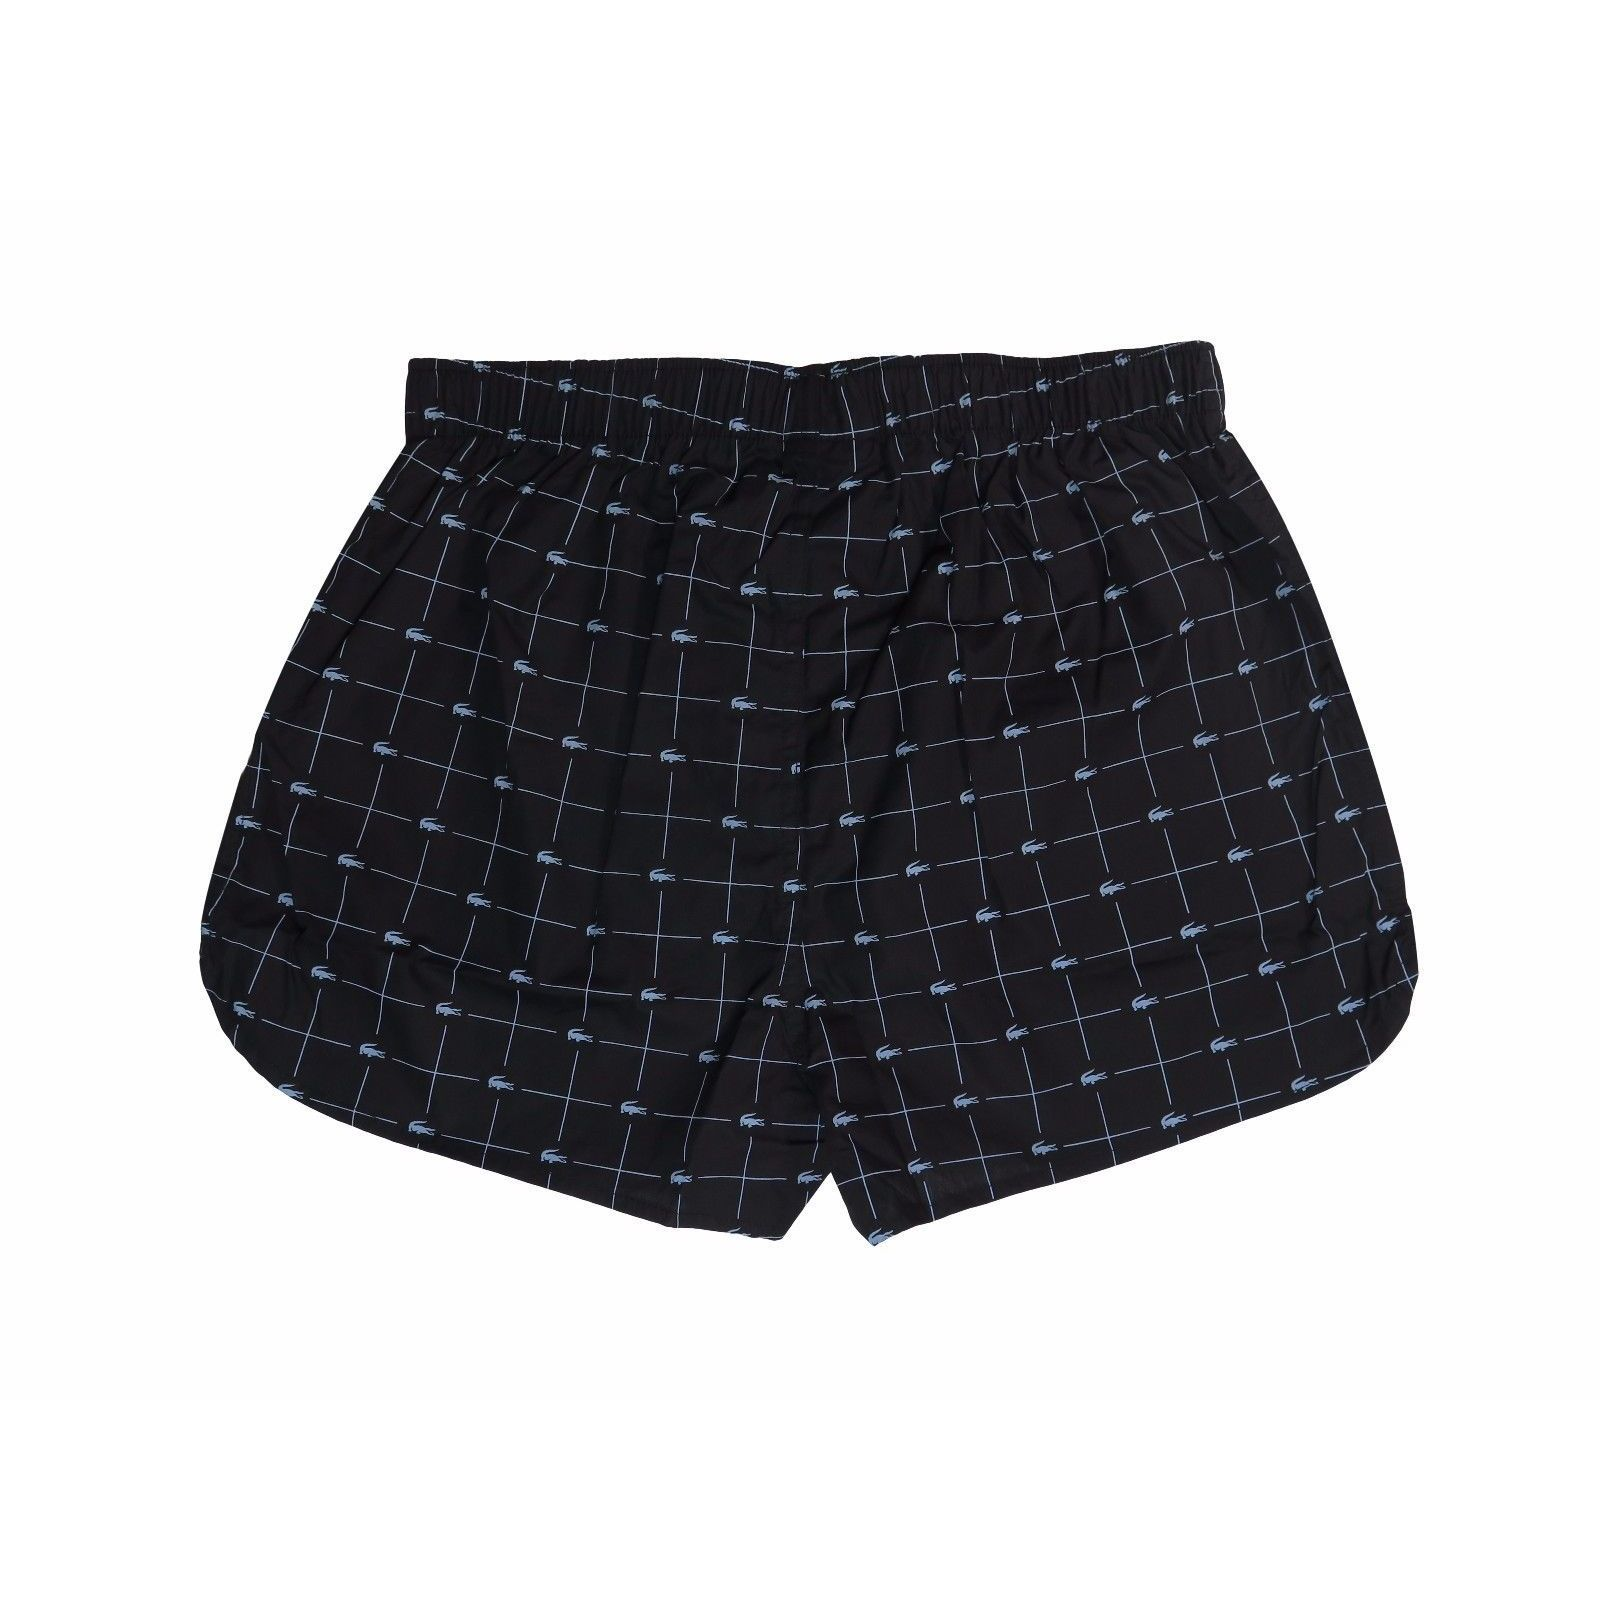 830fb7f69725 Shop Lacoste Men s Black Woven Croc-print Boxer - Free Shipping On Orders  Over  45 - Overstock - 14063243